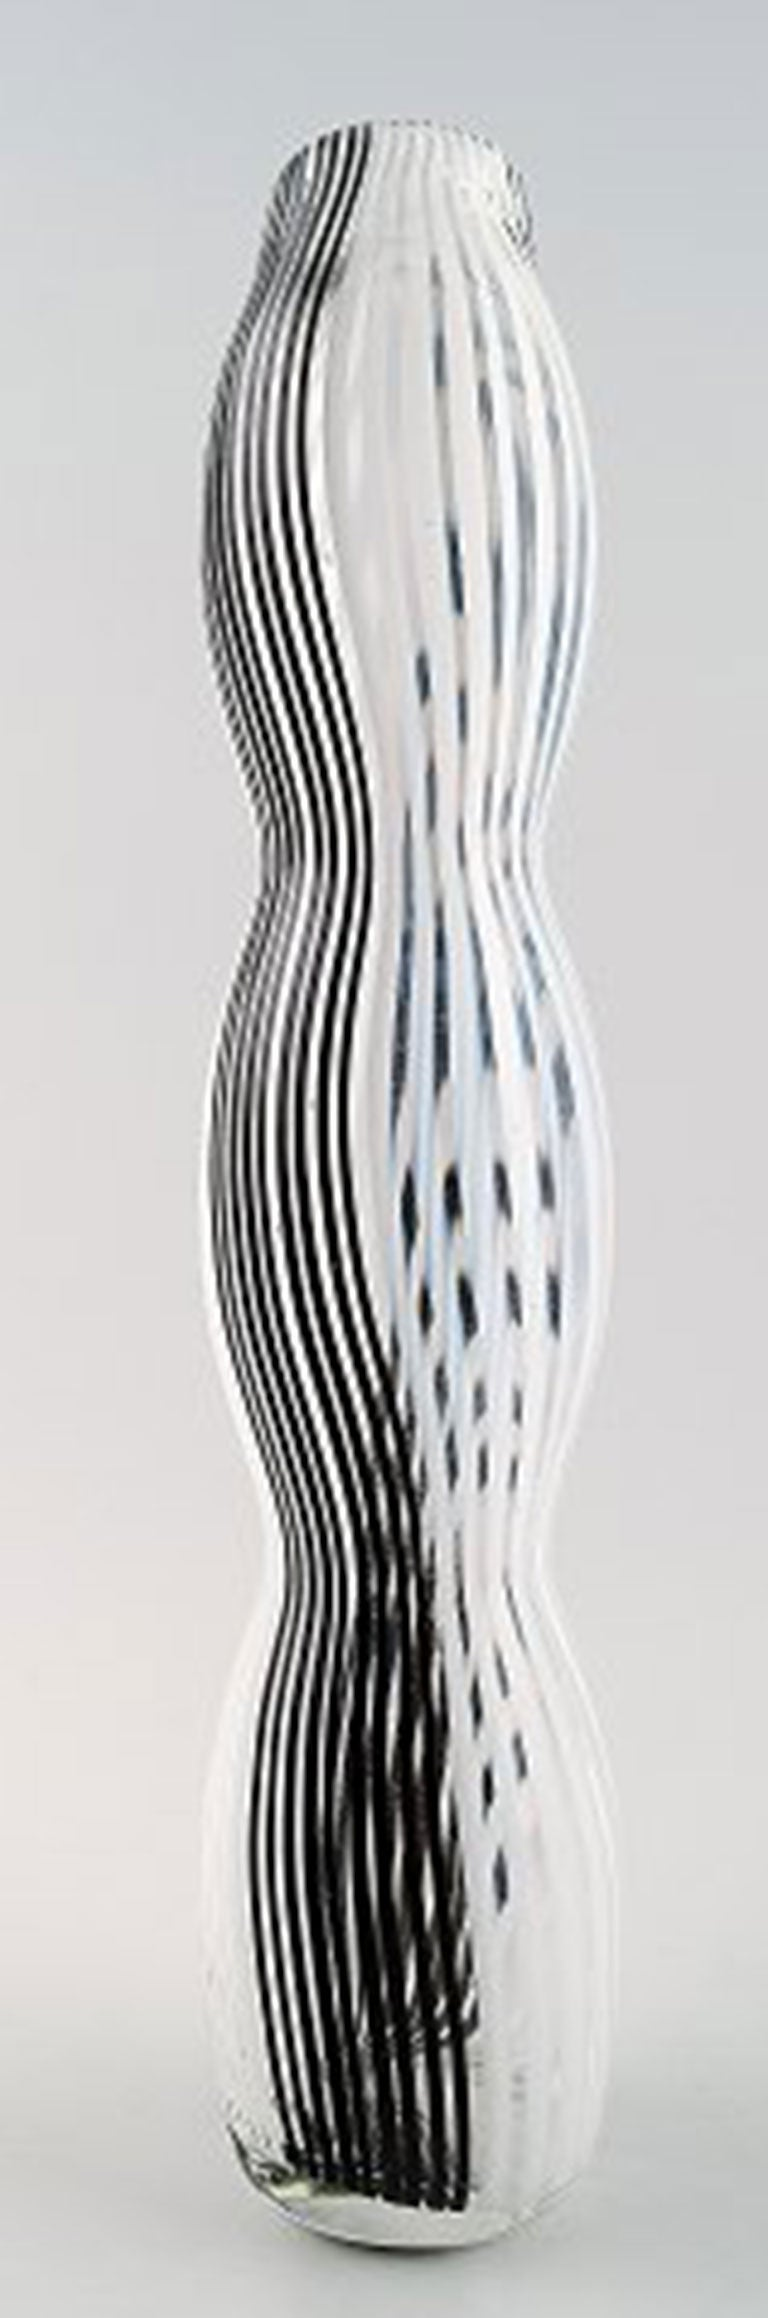 Murano Vase Murano Large Art Glass Vase